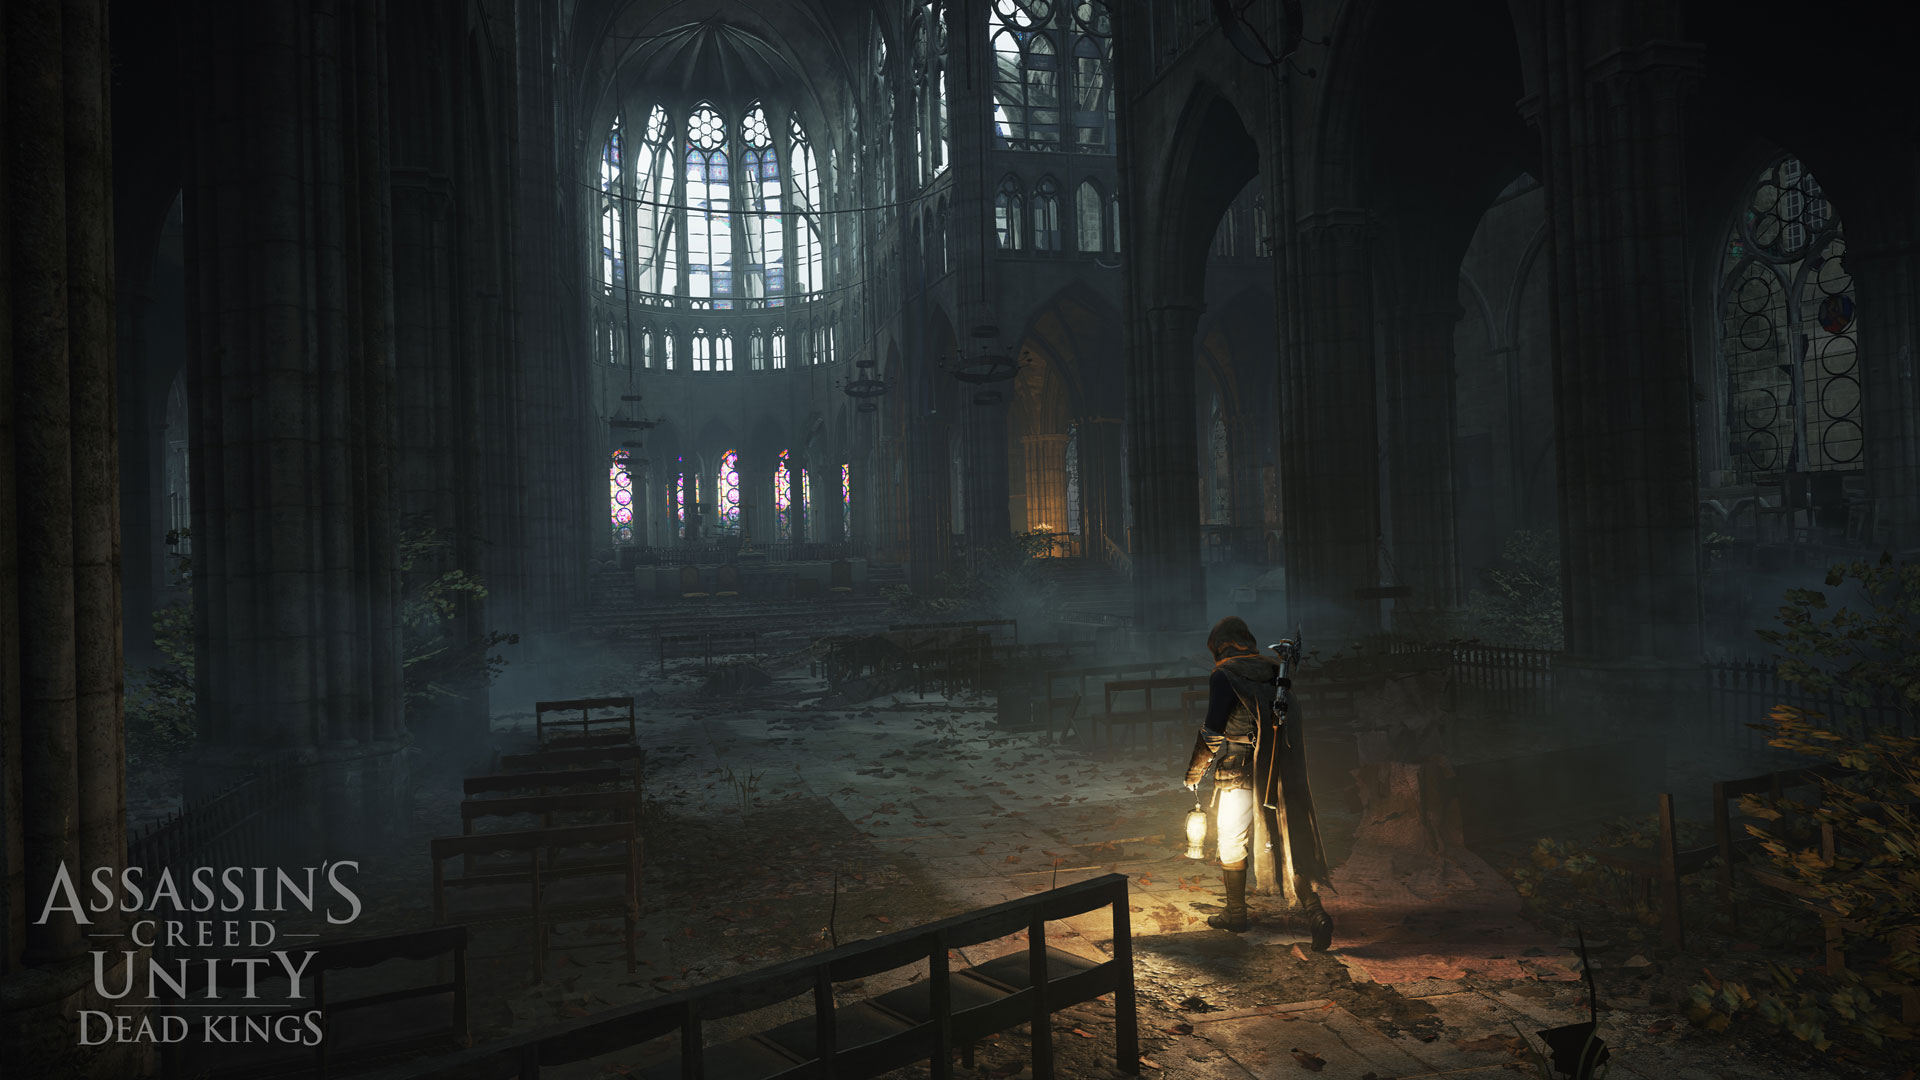 Assassin's Creed Unity - Dead Kings screenshot 2243